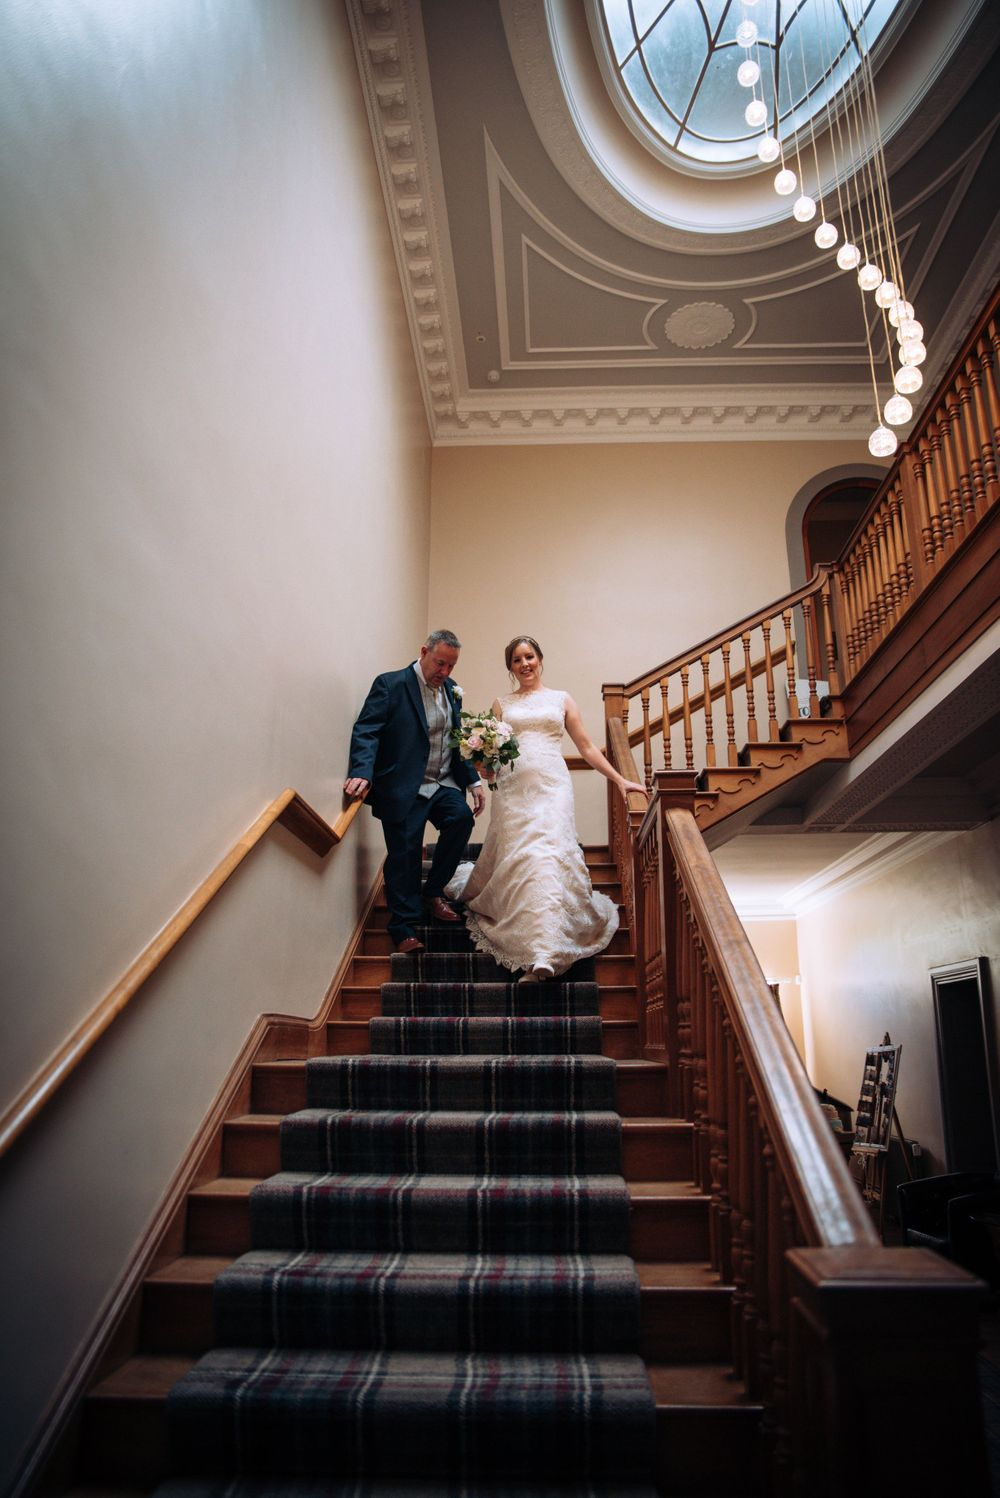 Zara Davis Wedding Photography Near Stroud, Gloucestershire, Cotswolds Glenfall House descending staircase bride